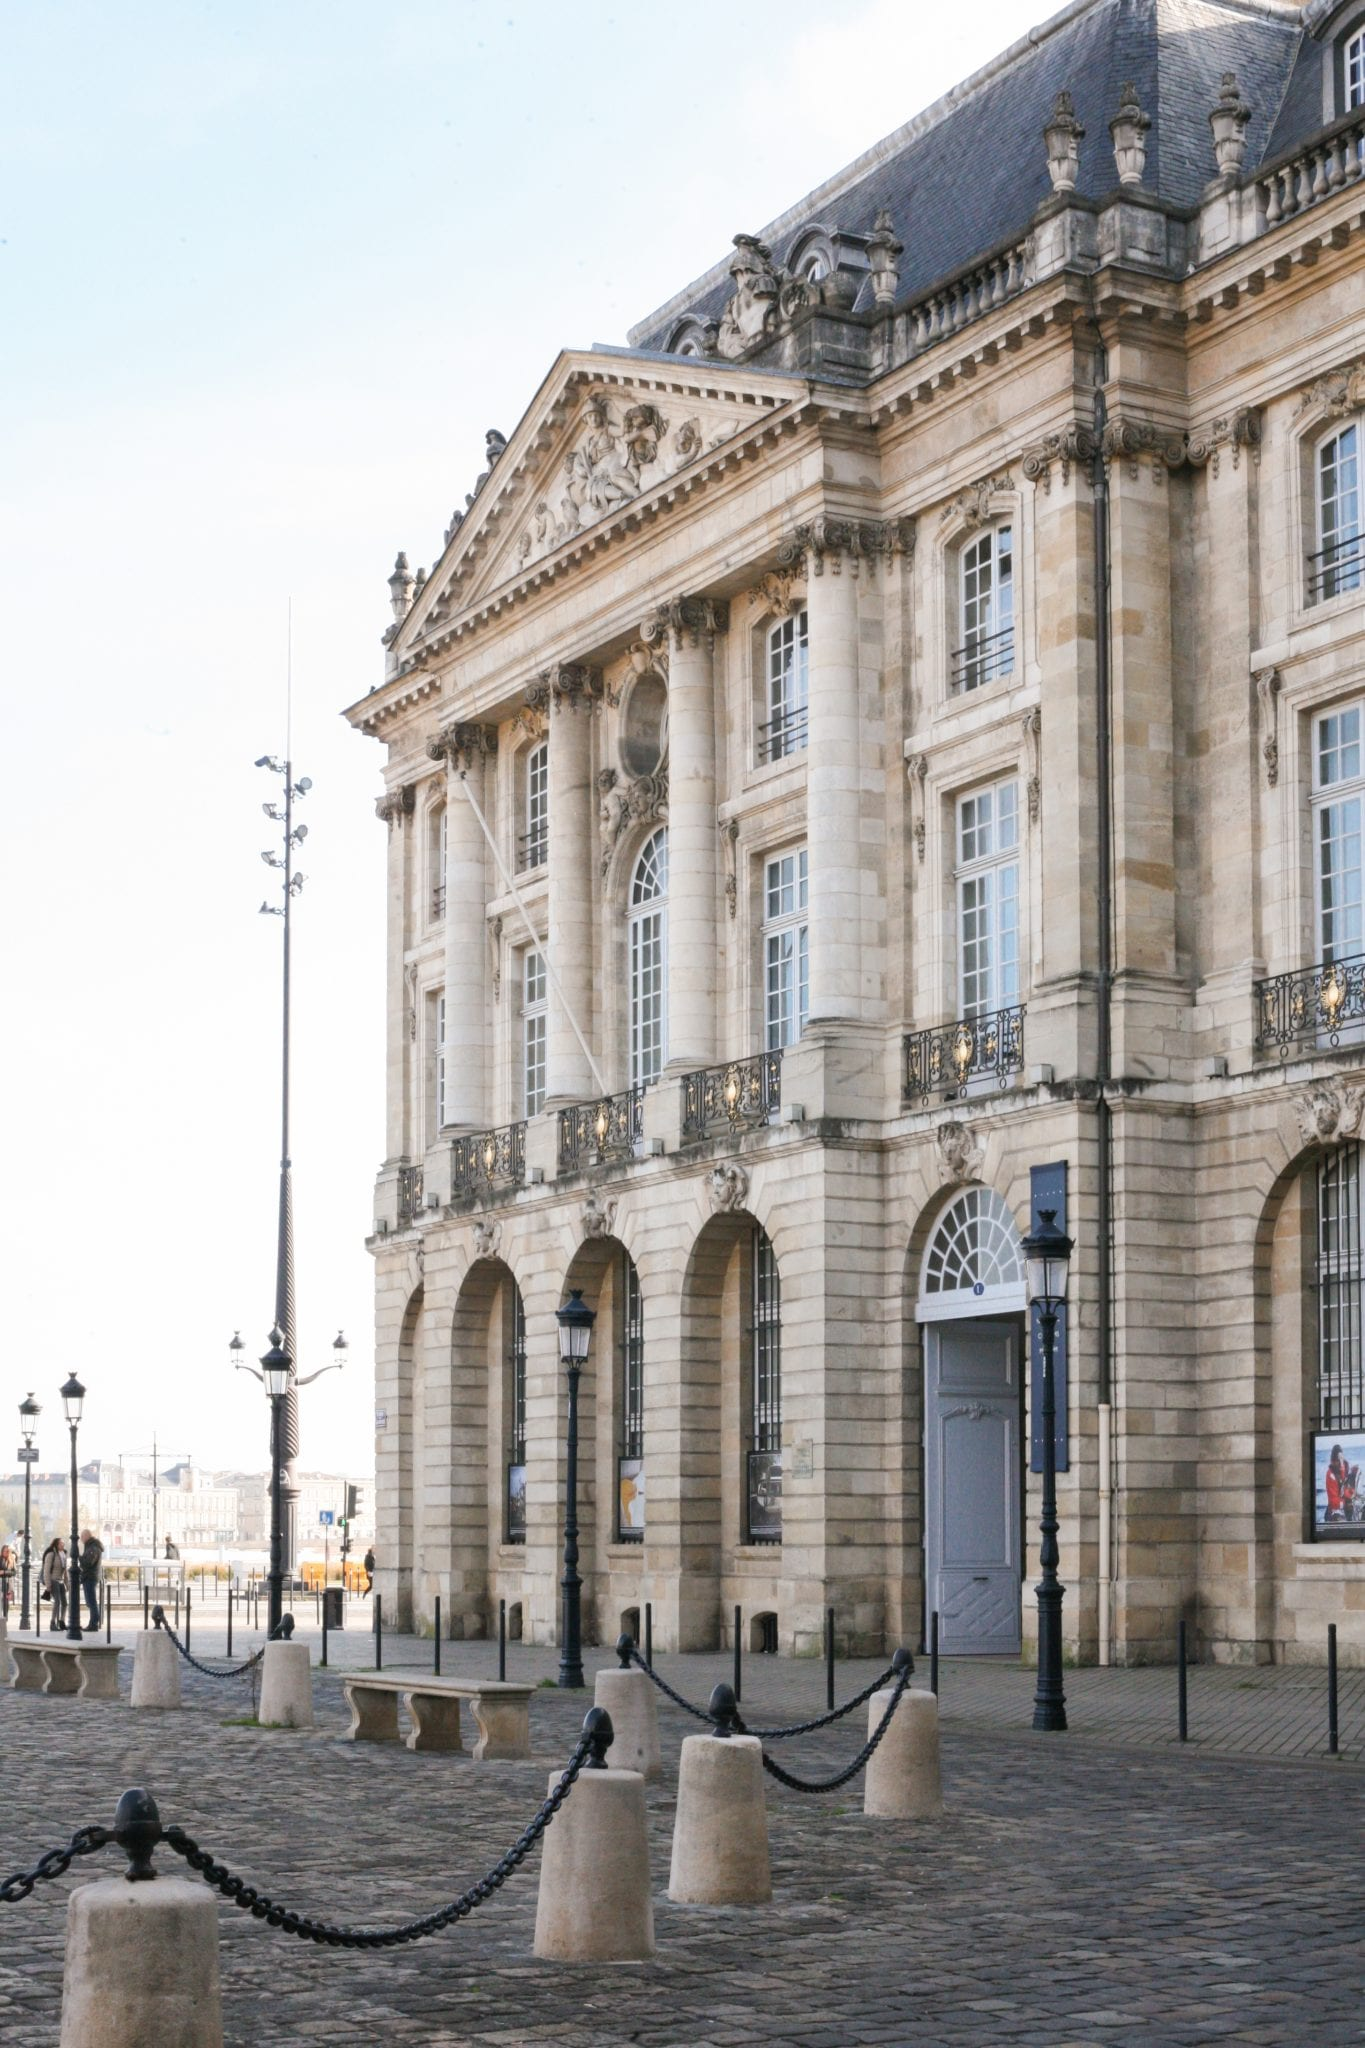 La place de la Bourse à Bordeaux